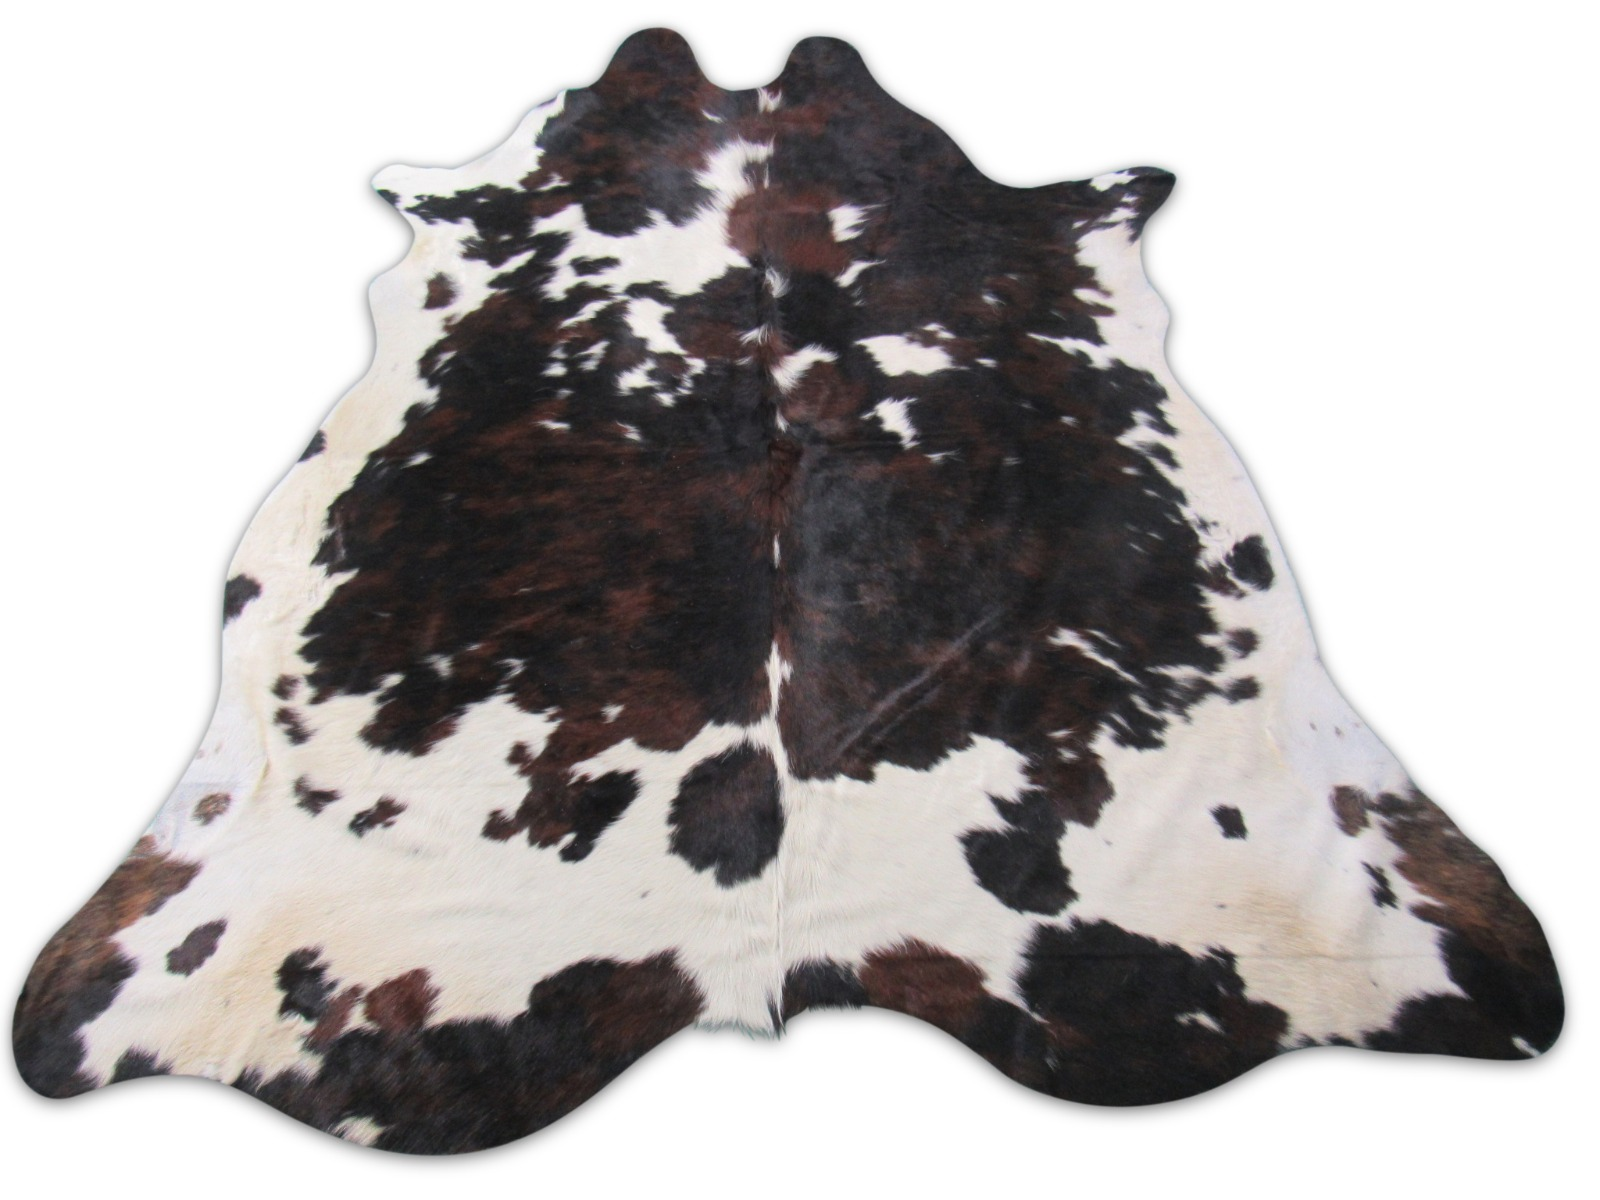 A-1468 Tricolor Speckled Cowhide Rug Size: 7' X 7'